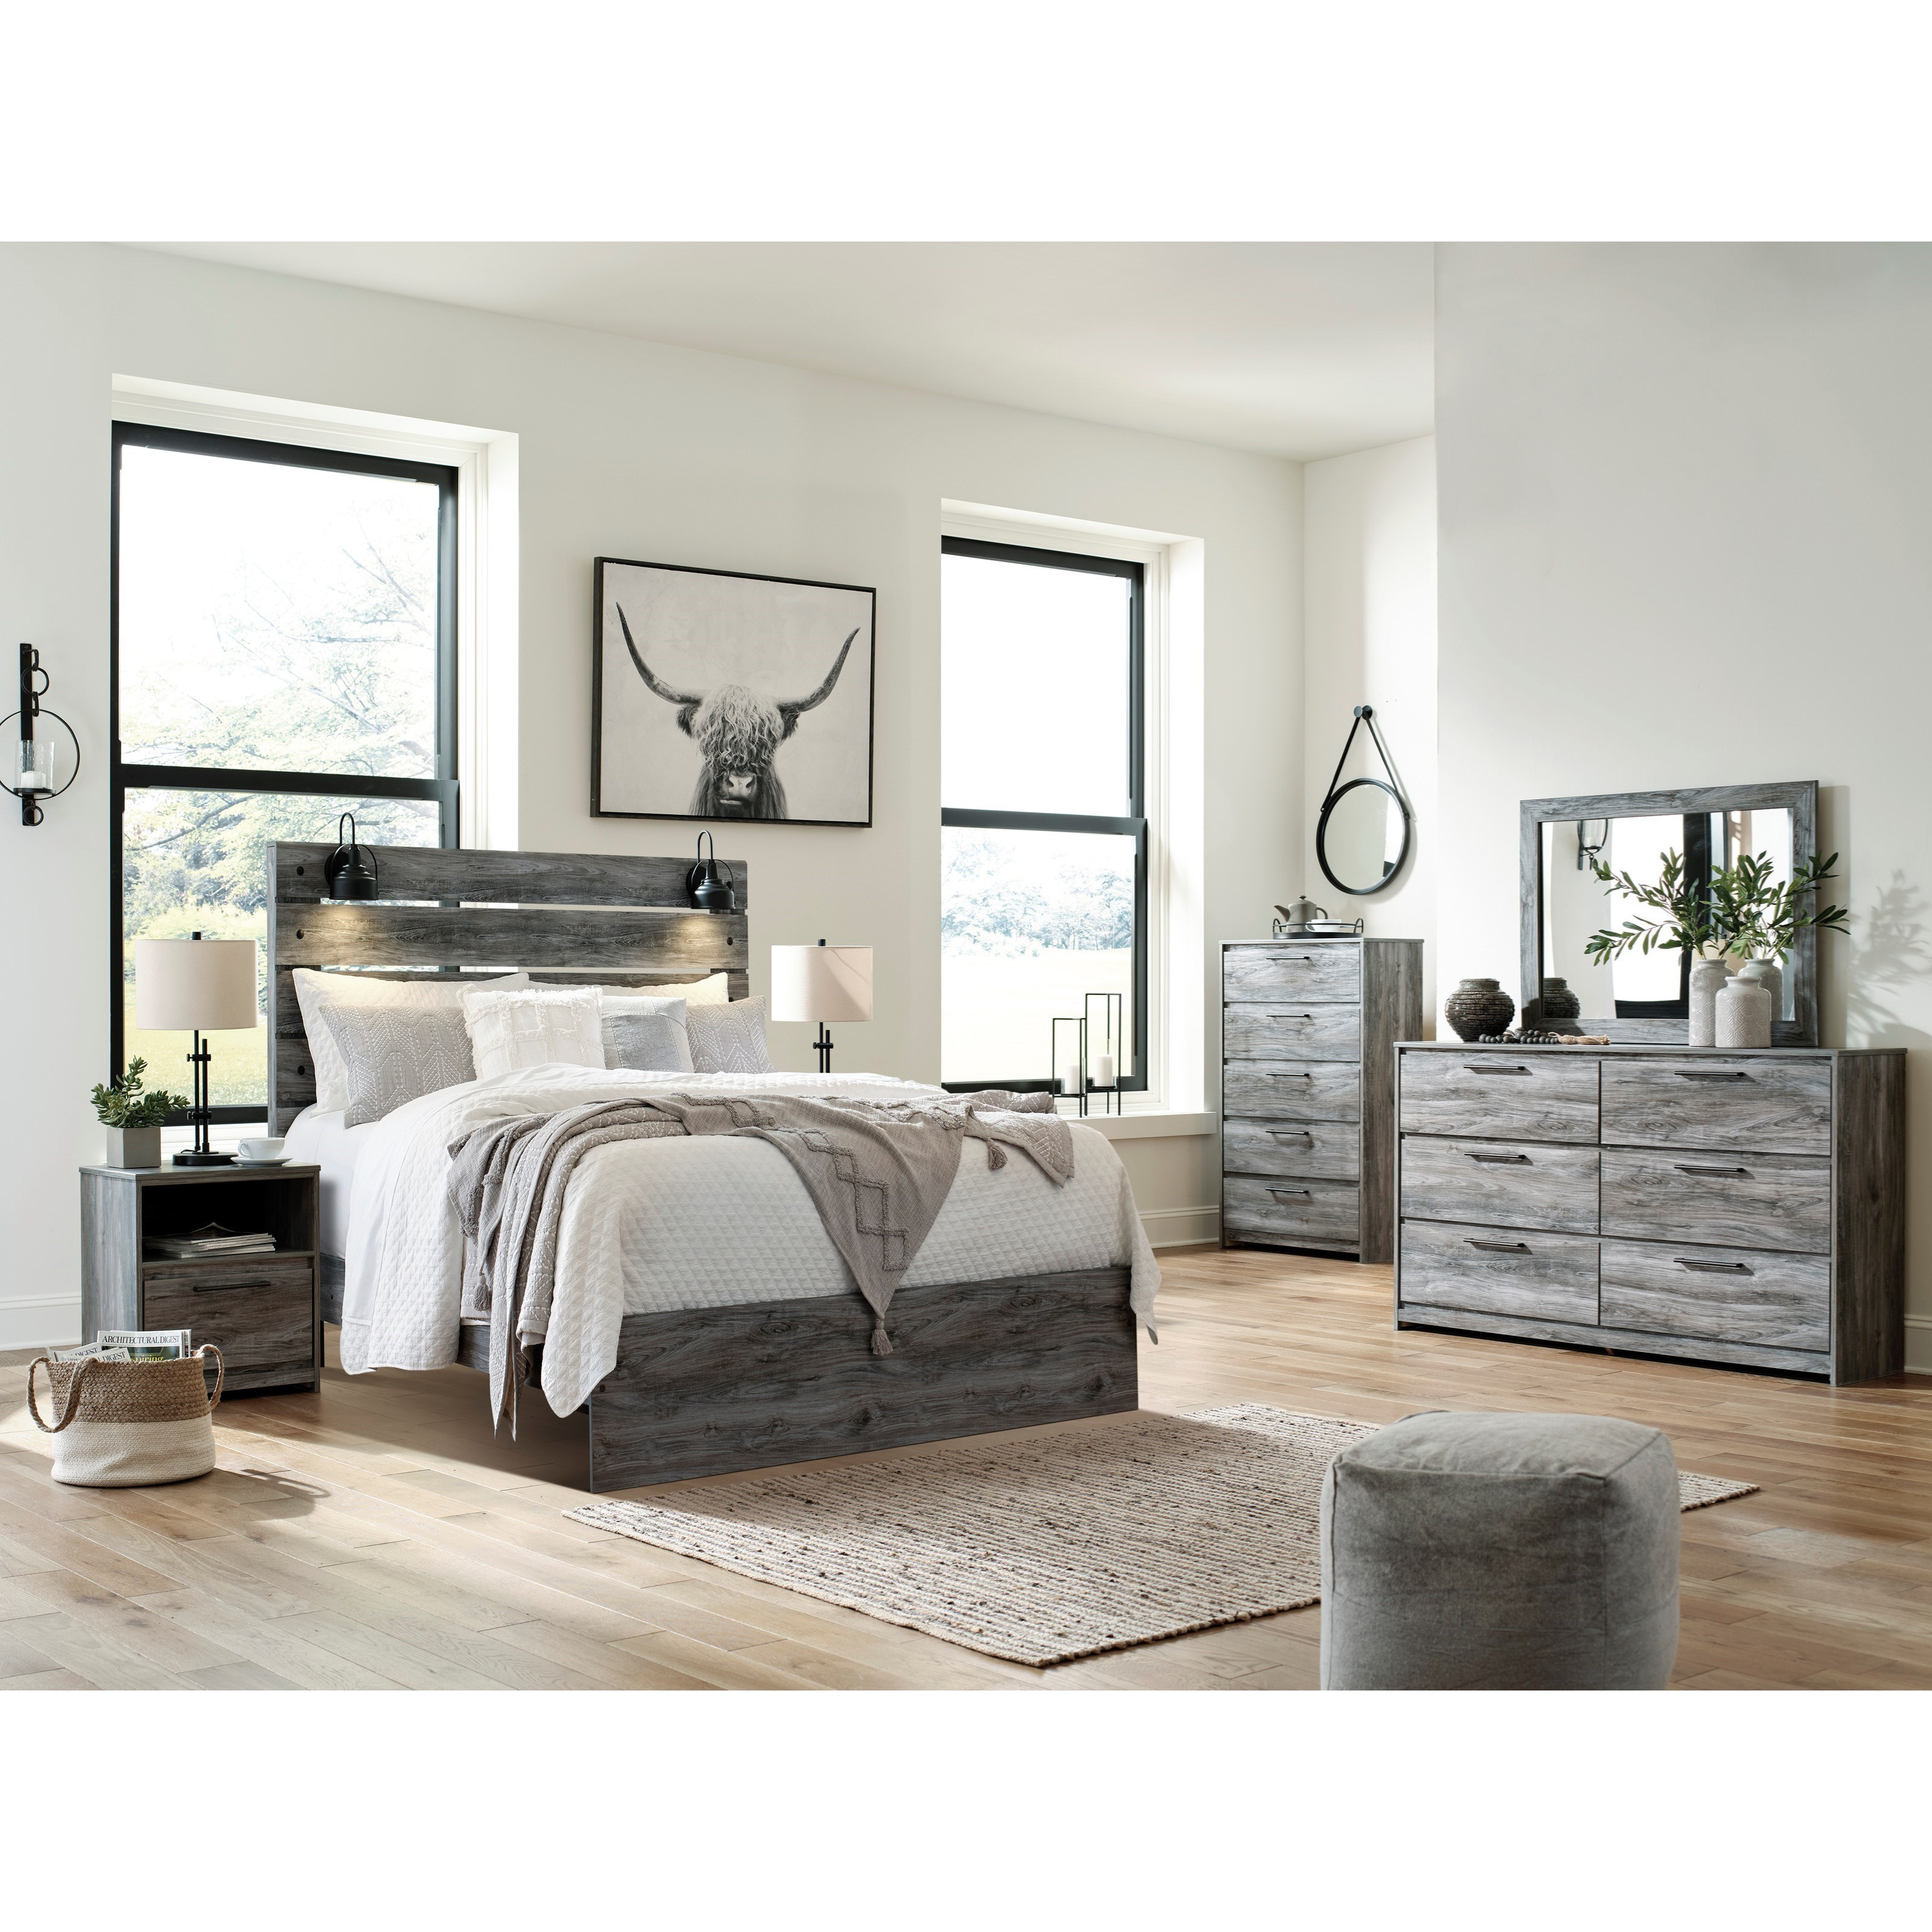 Baystorm Queen Bedroom Group by Ashley (Signature Design) at Johnny Janosik